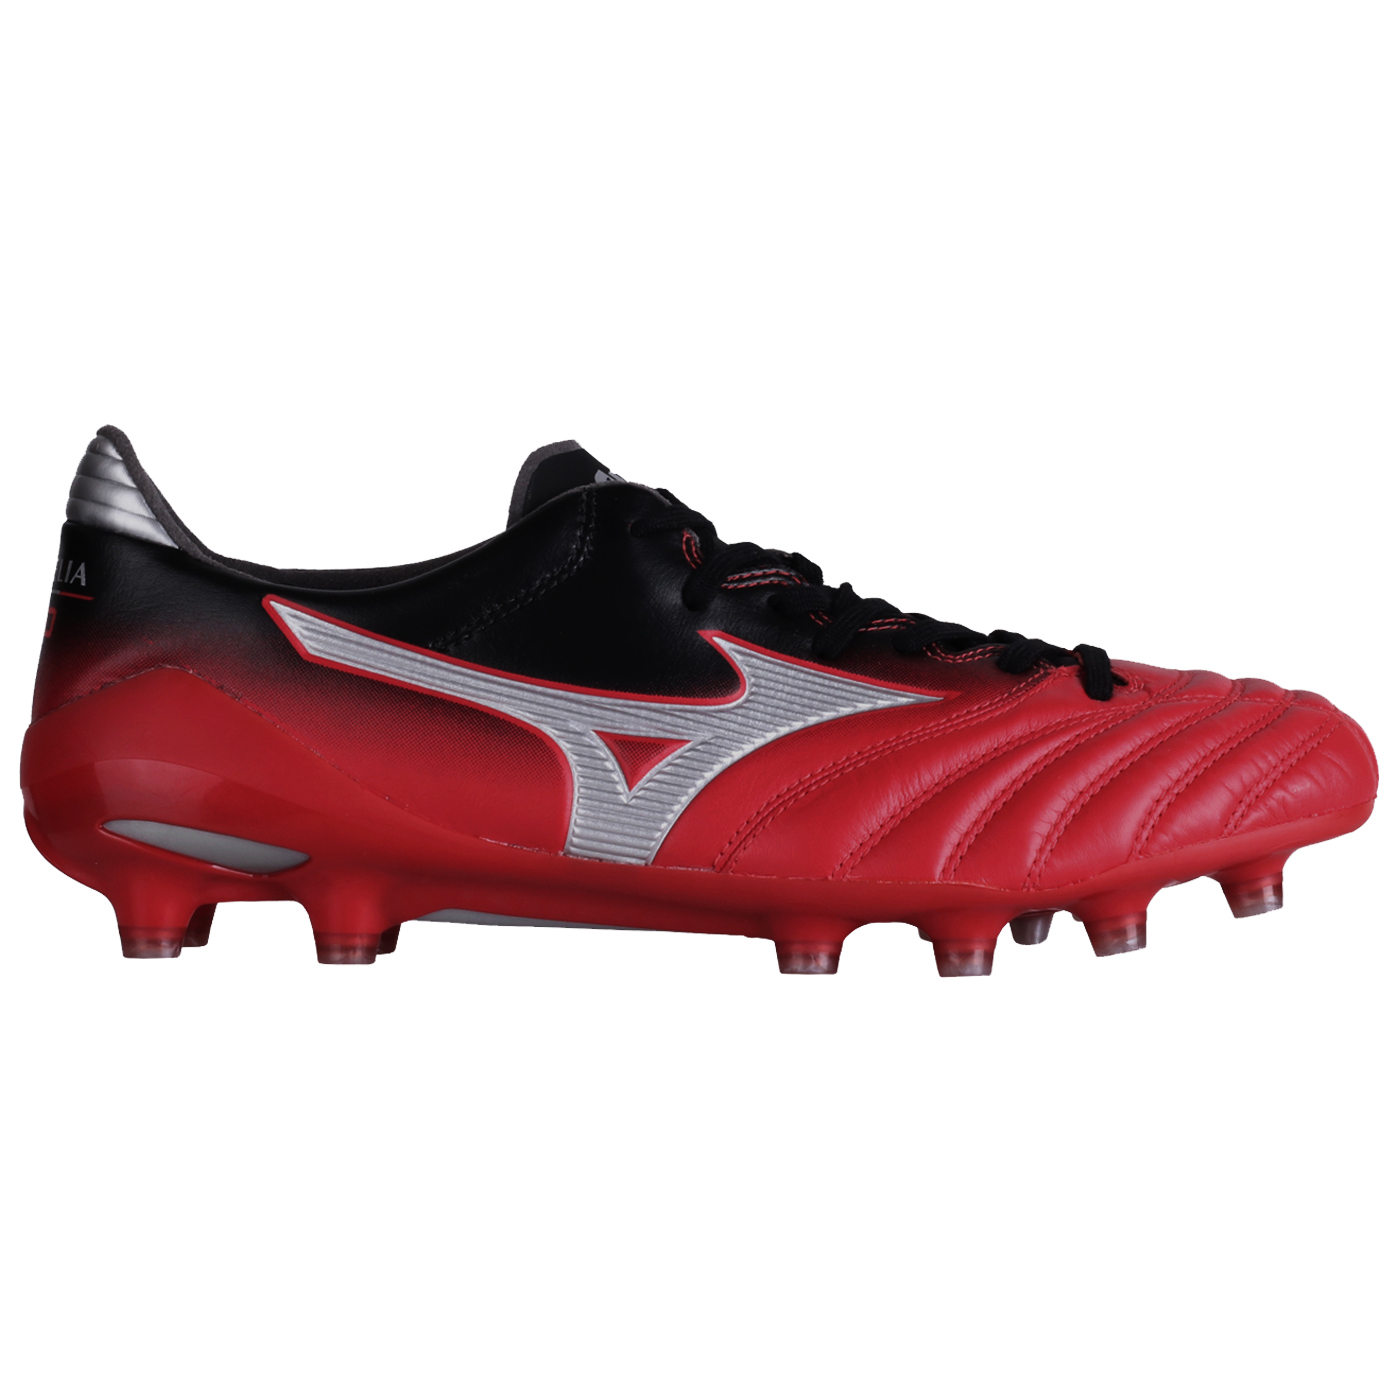 MORELIA NEO II (MD) - CHINESE RED/ SILVER/ BLACK